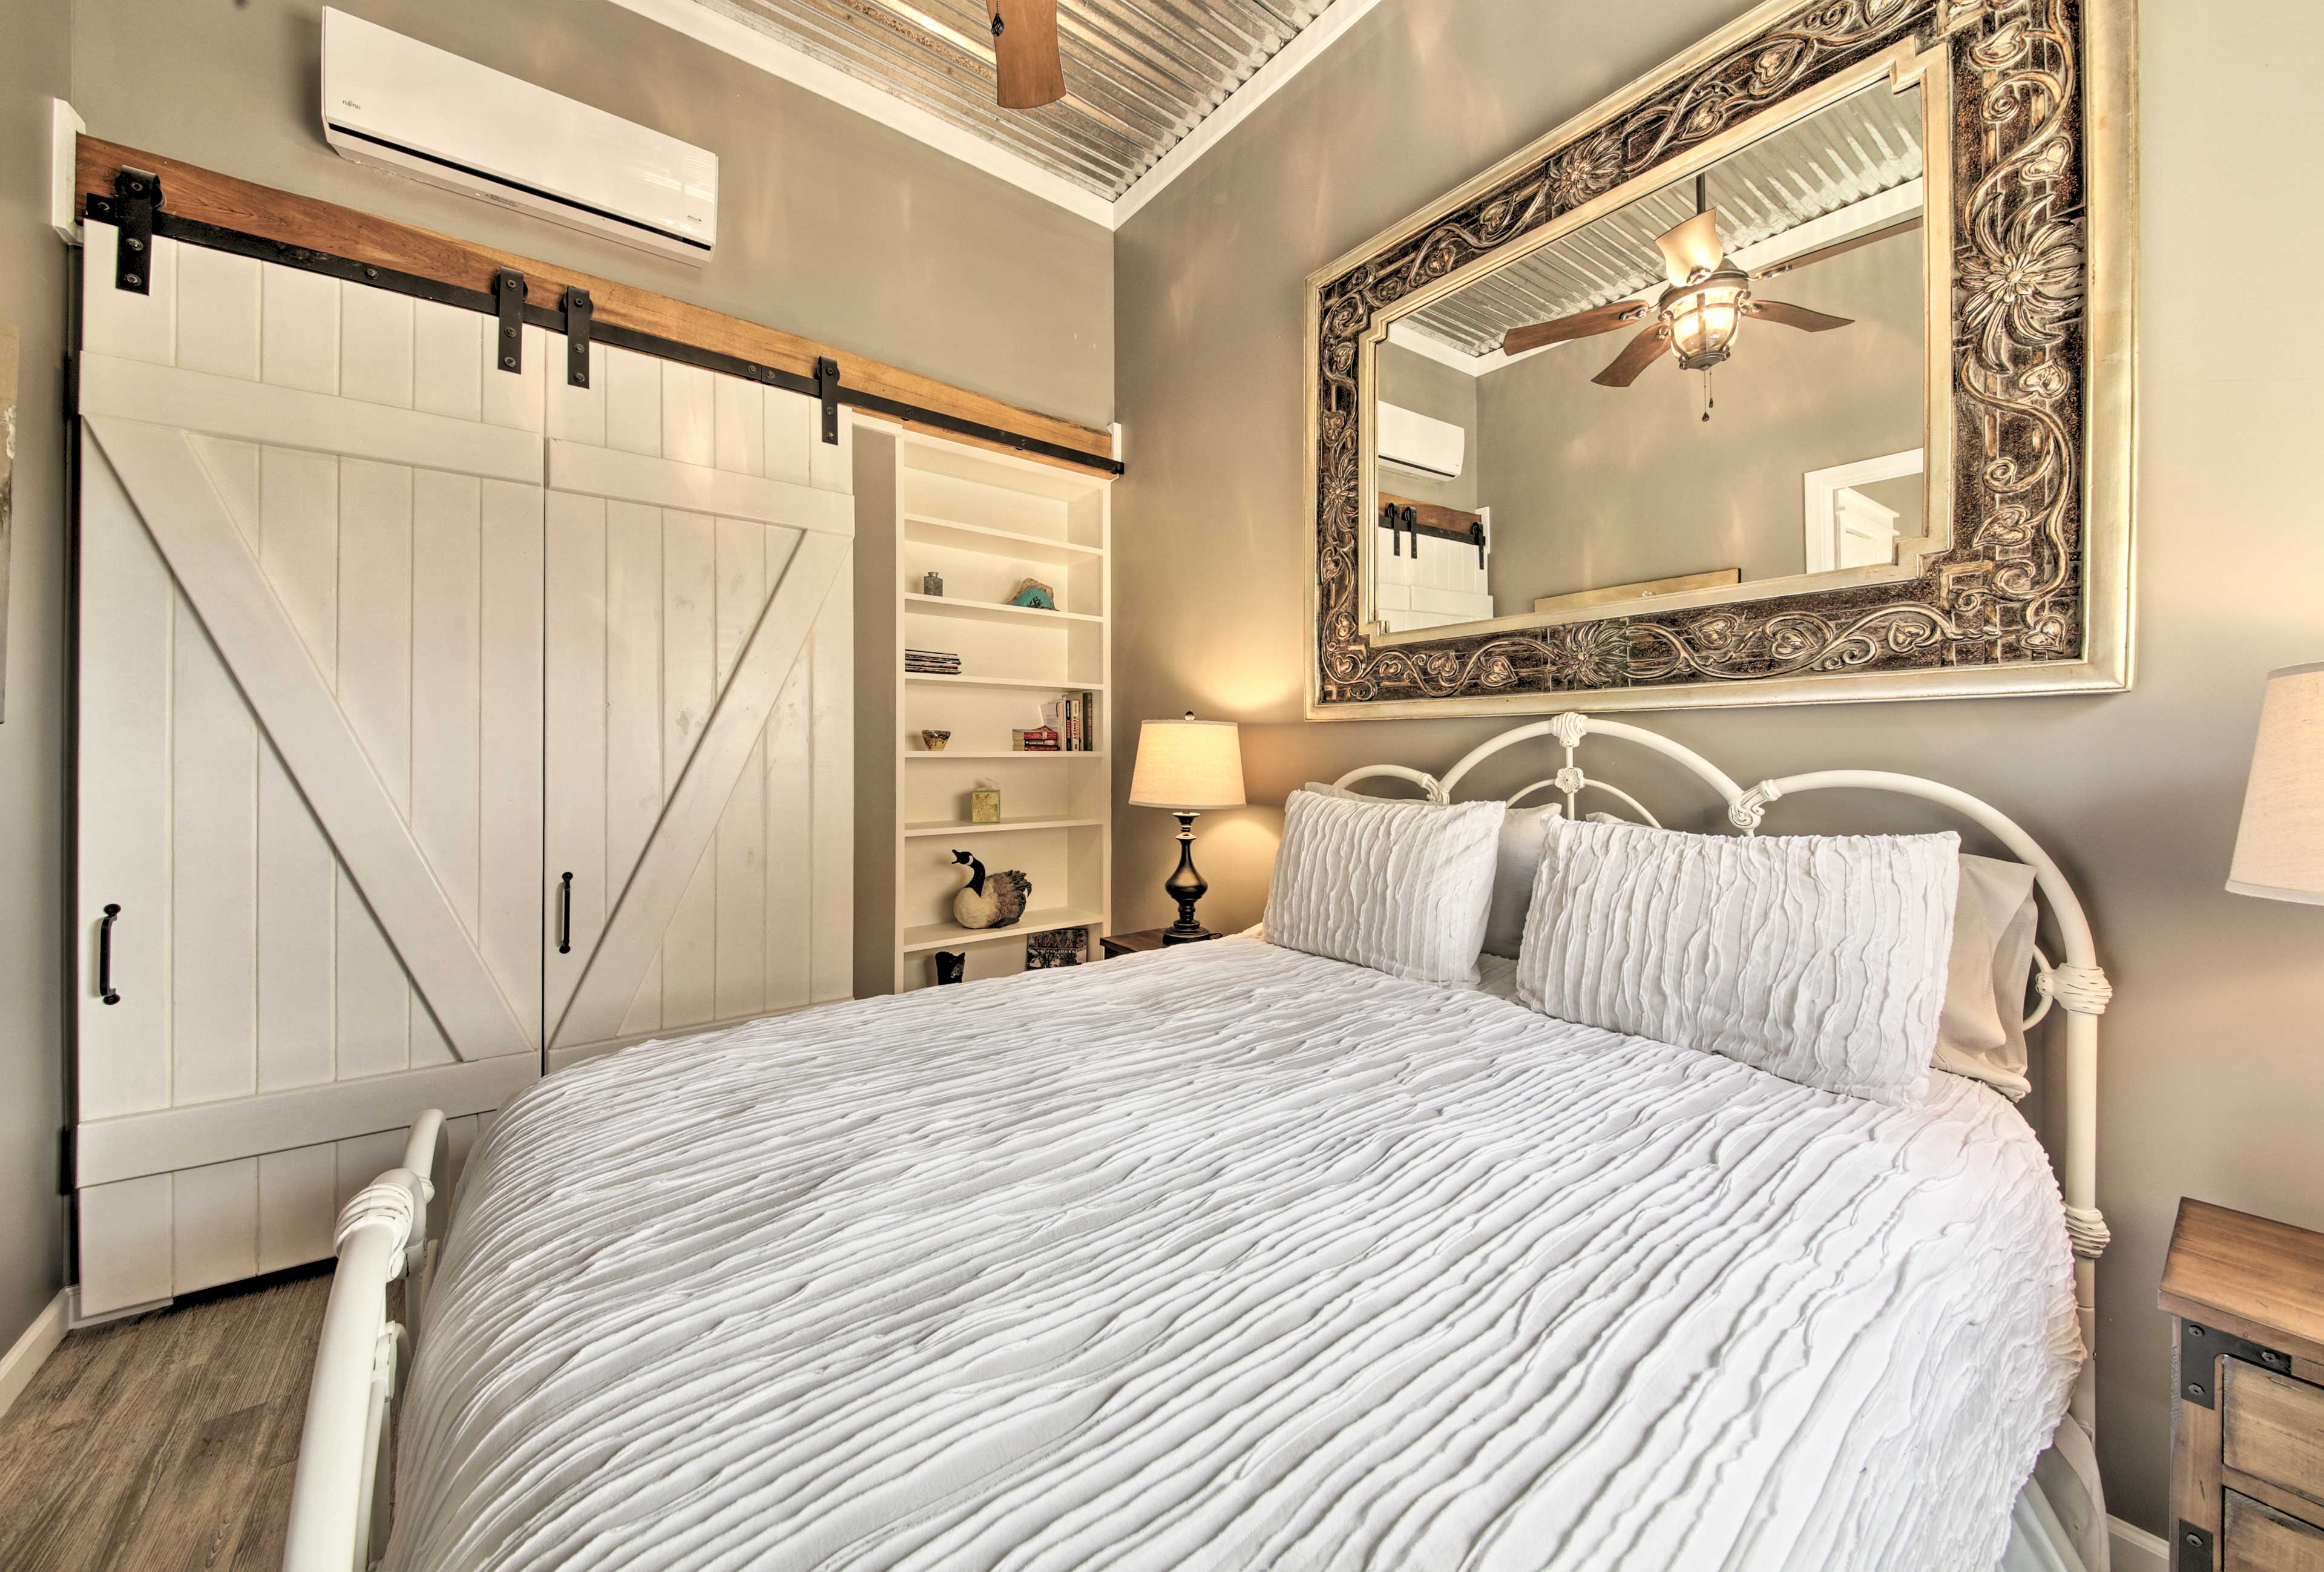 This first bedroom houses a queen-sized bed.